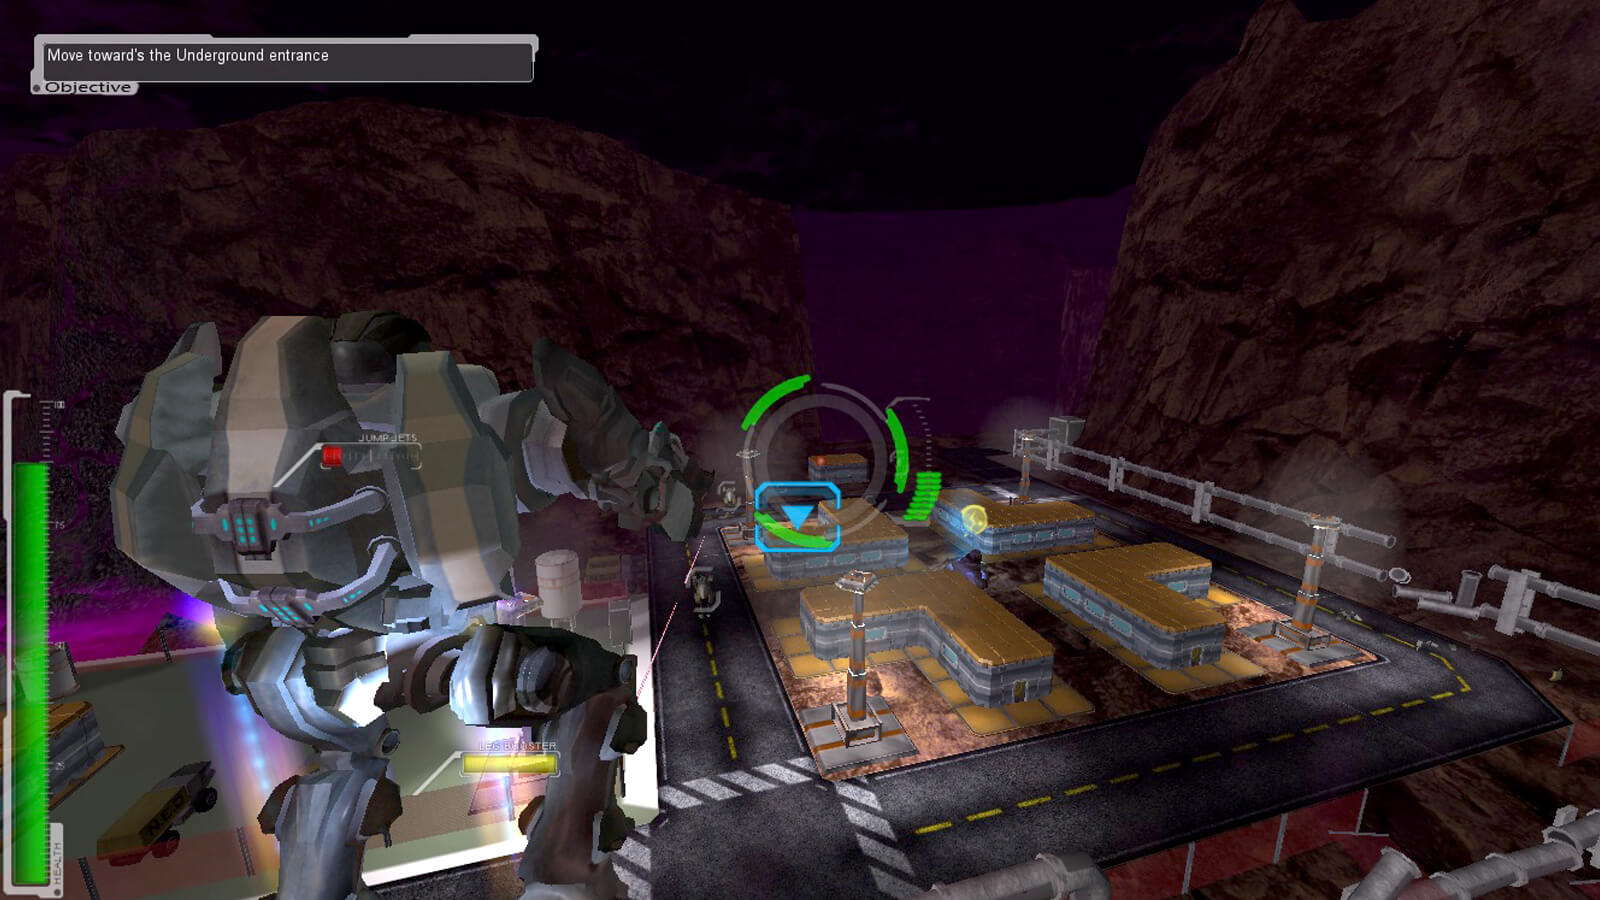 View from the back of a mech suit as the player jumps through the air. An underground road and military base are seen below.